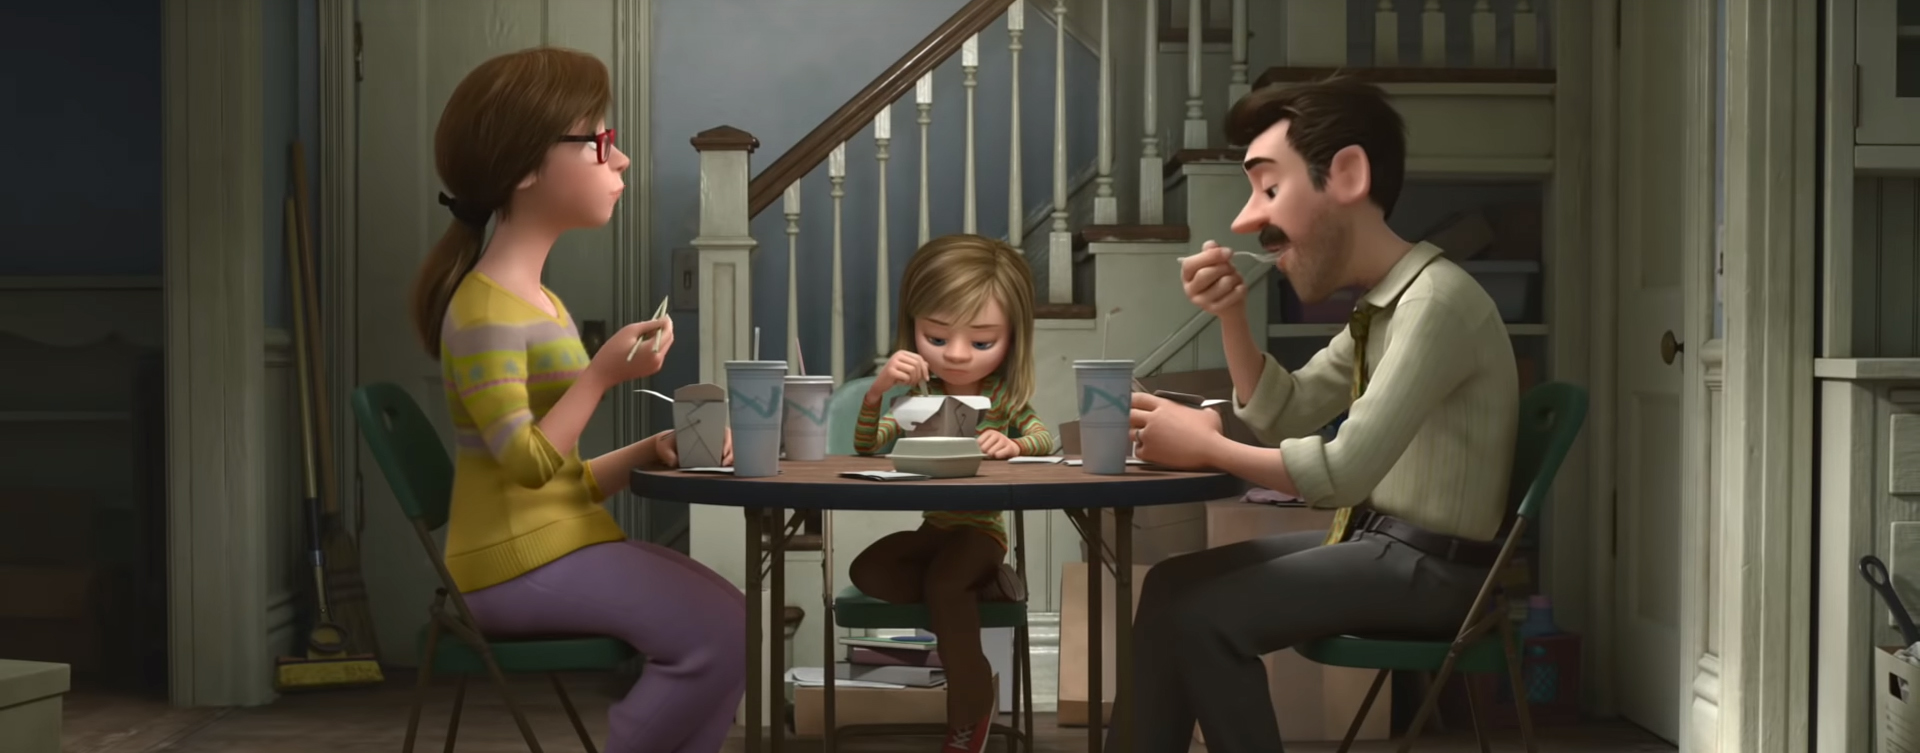 Inside/Out. Image Credit: Disney/Pixar.